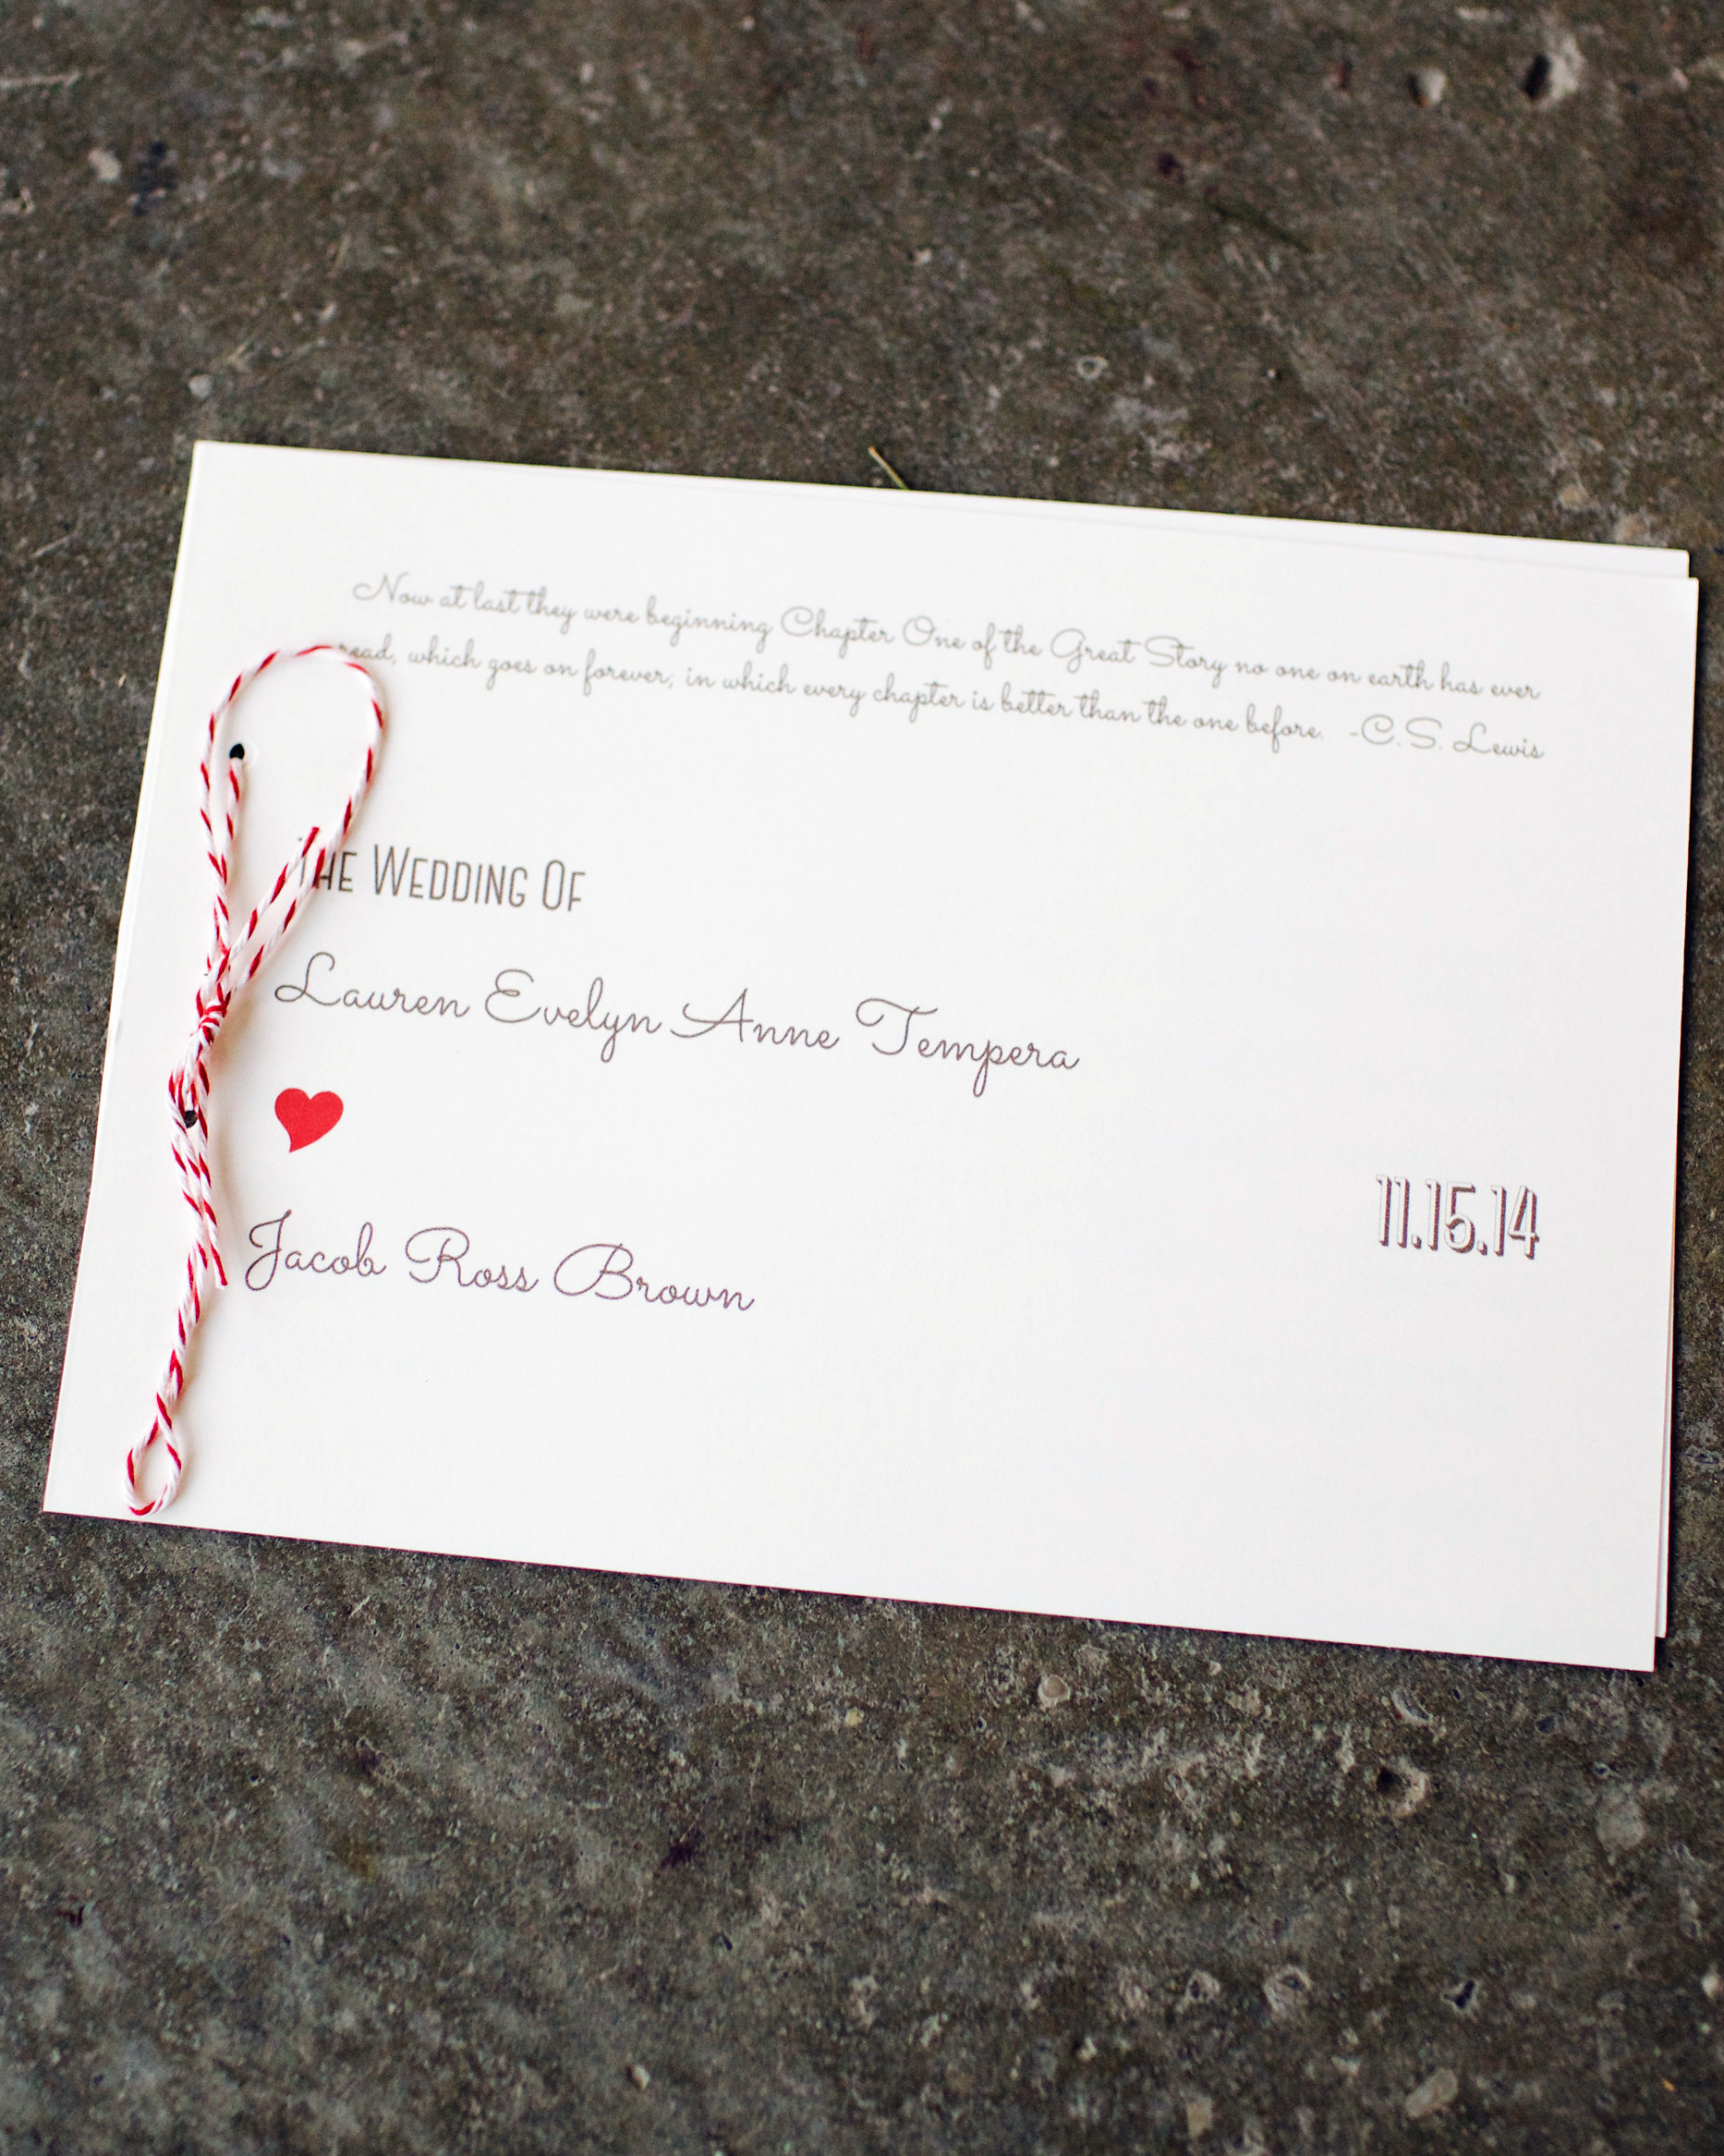 lauren-jake-wedding-program-7253-s111838-0315.jpg